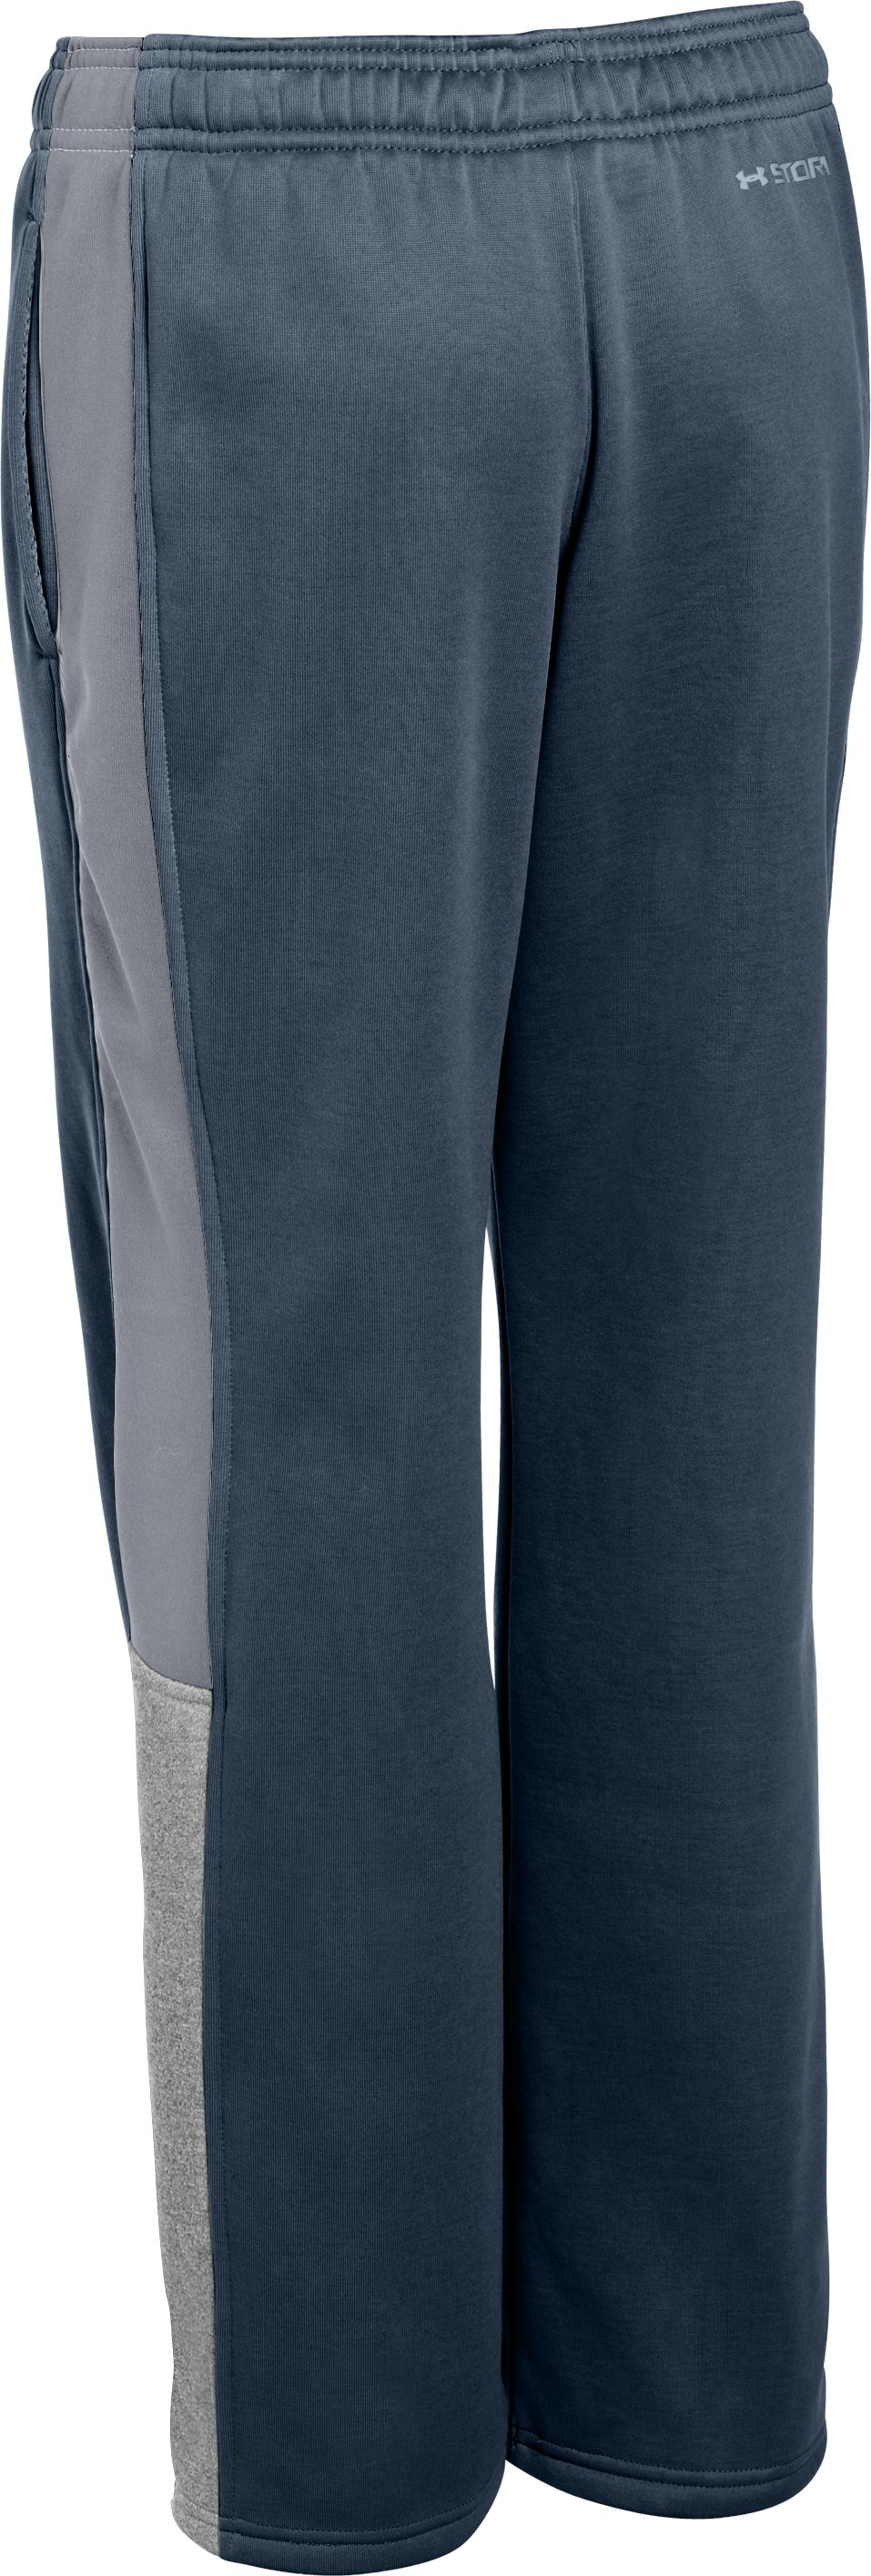 Boys' Armour® Fleece Storm Strokes Warm-Up Pants 2.0, Mechanic Blue, undefined